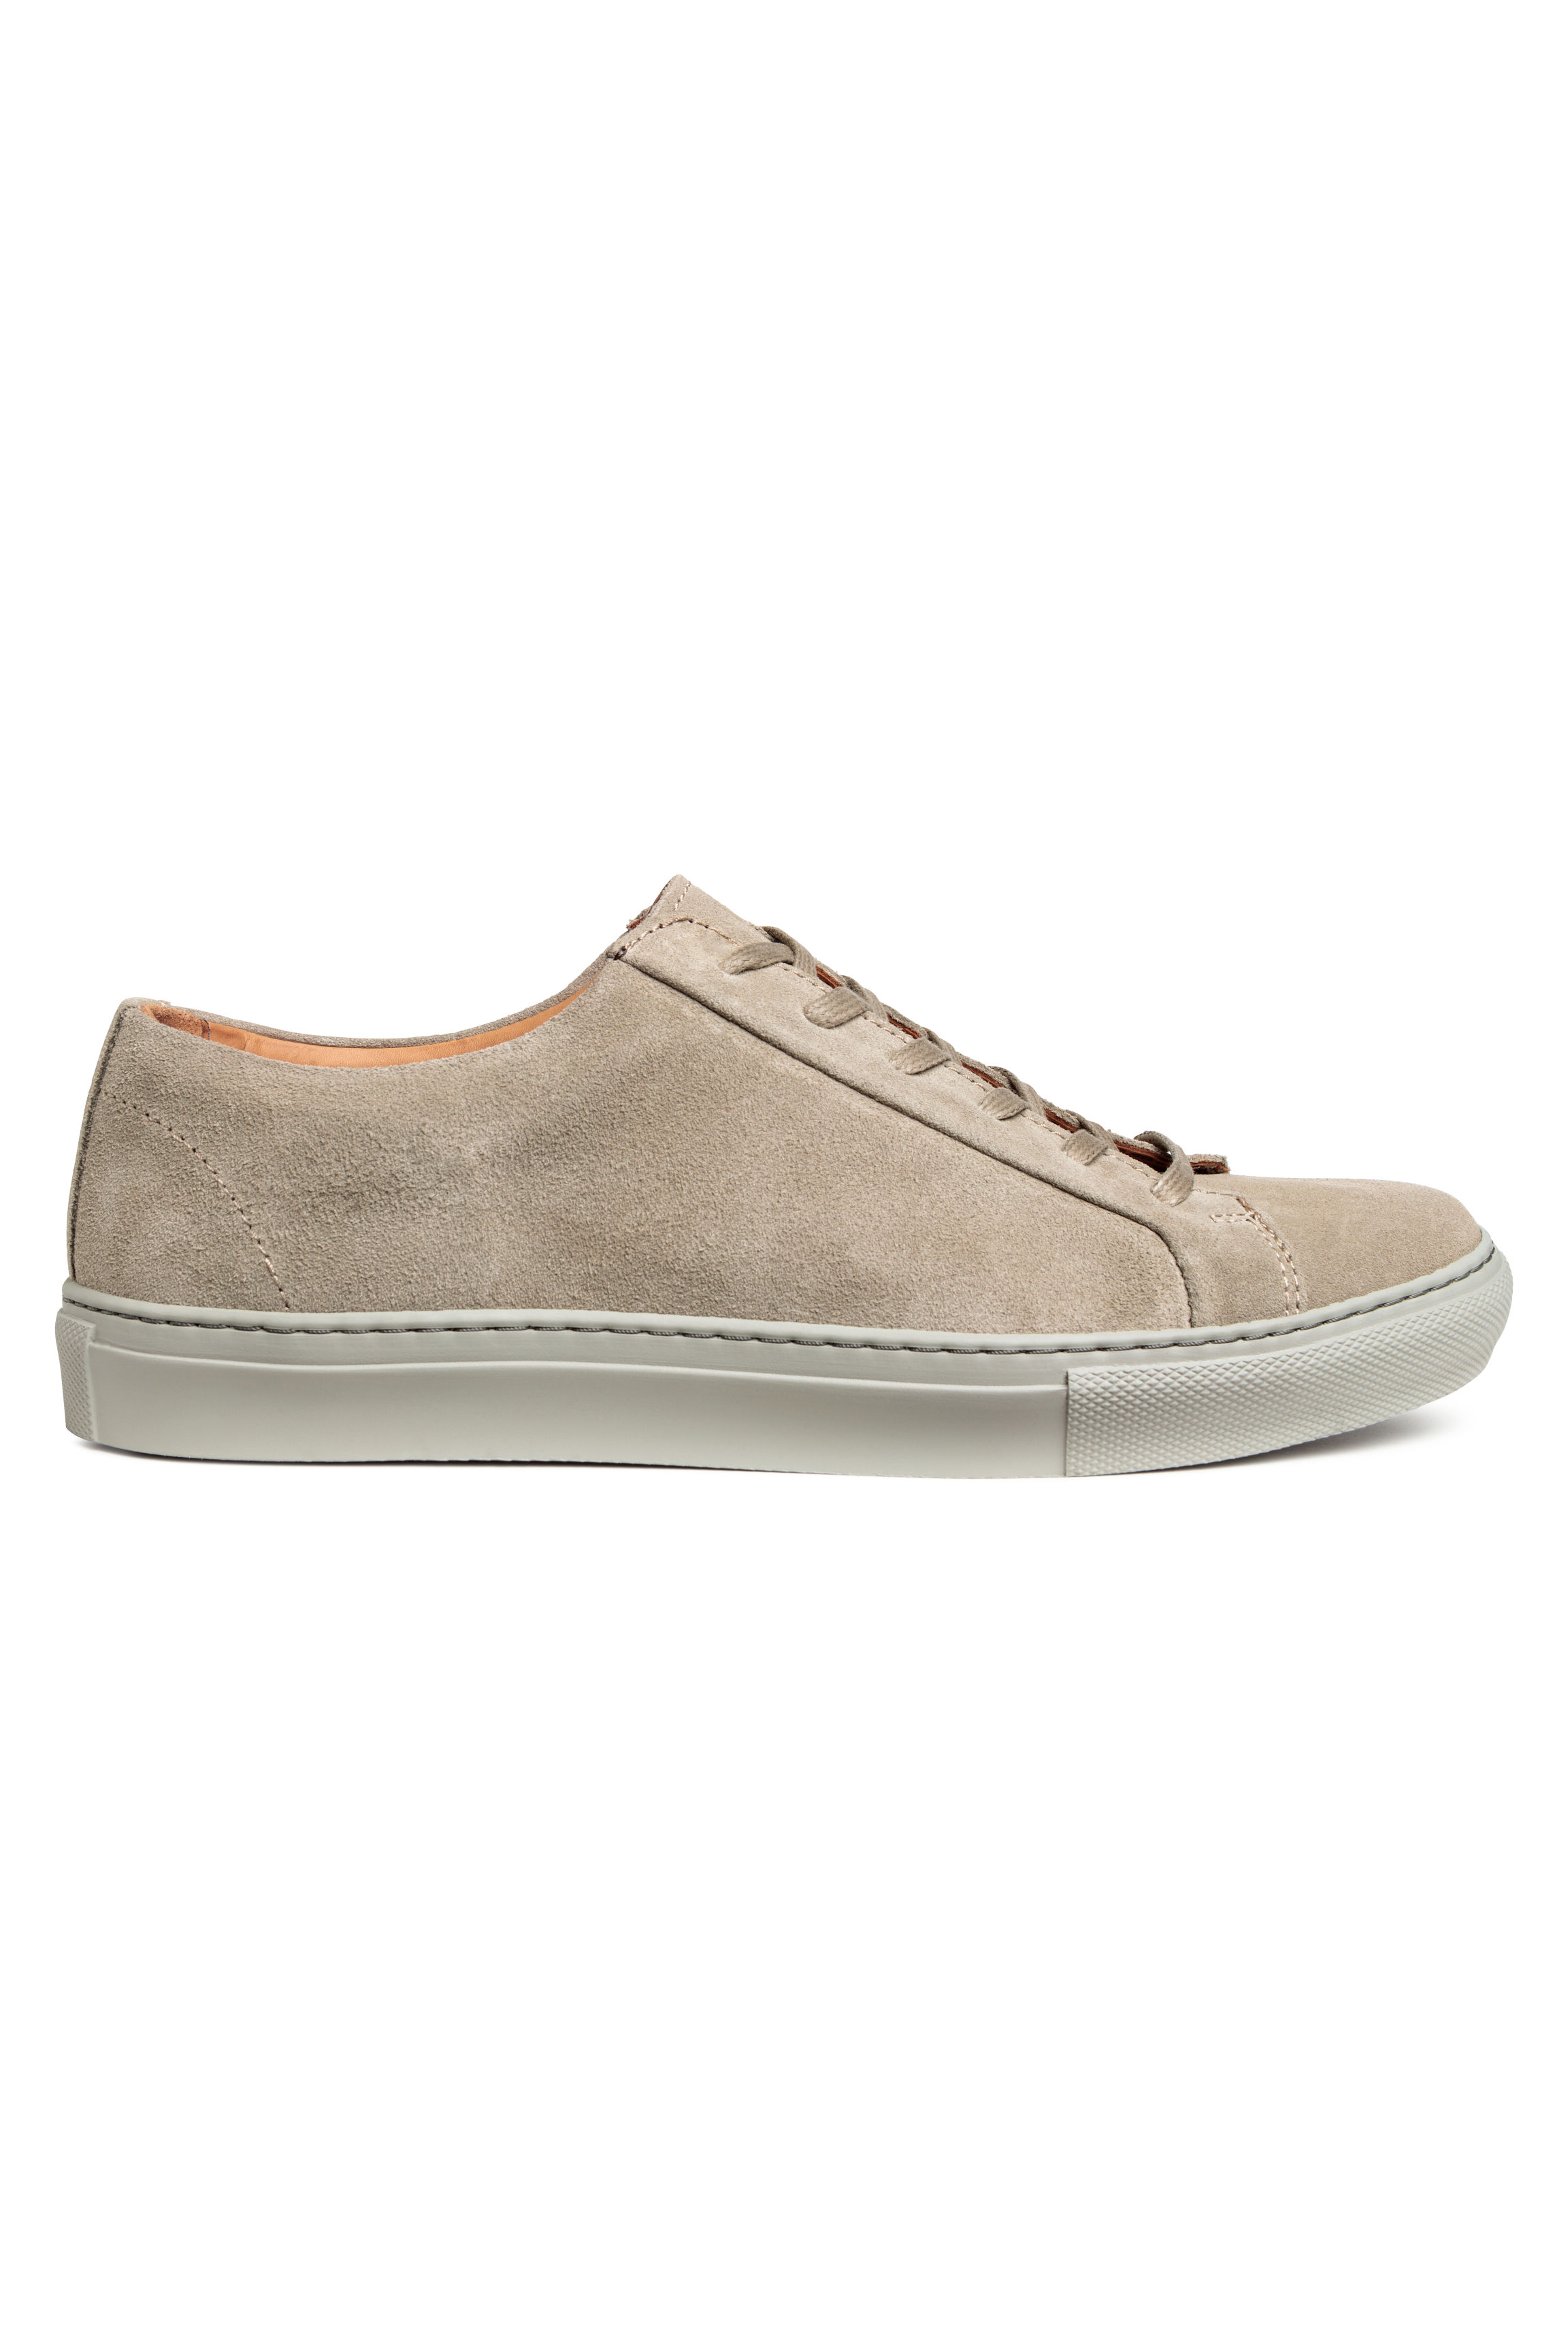 H&M Edition Mole Suede trainers